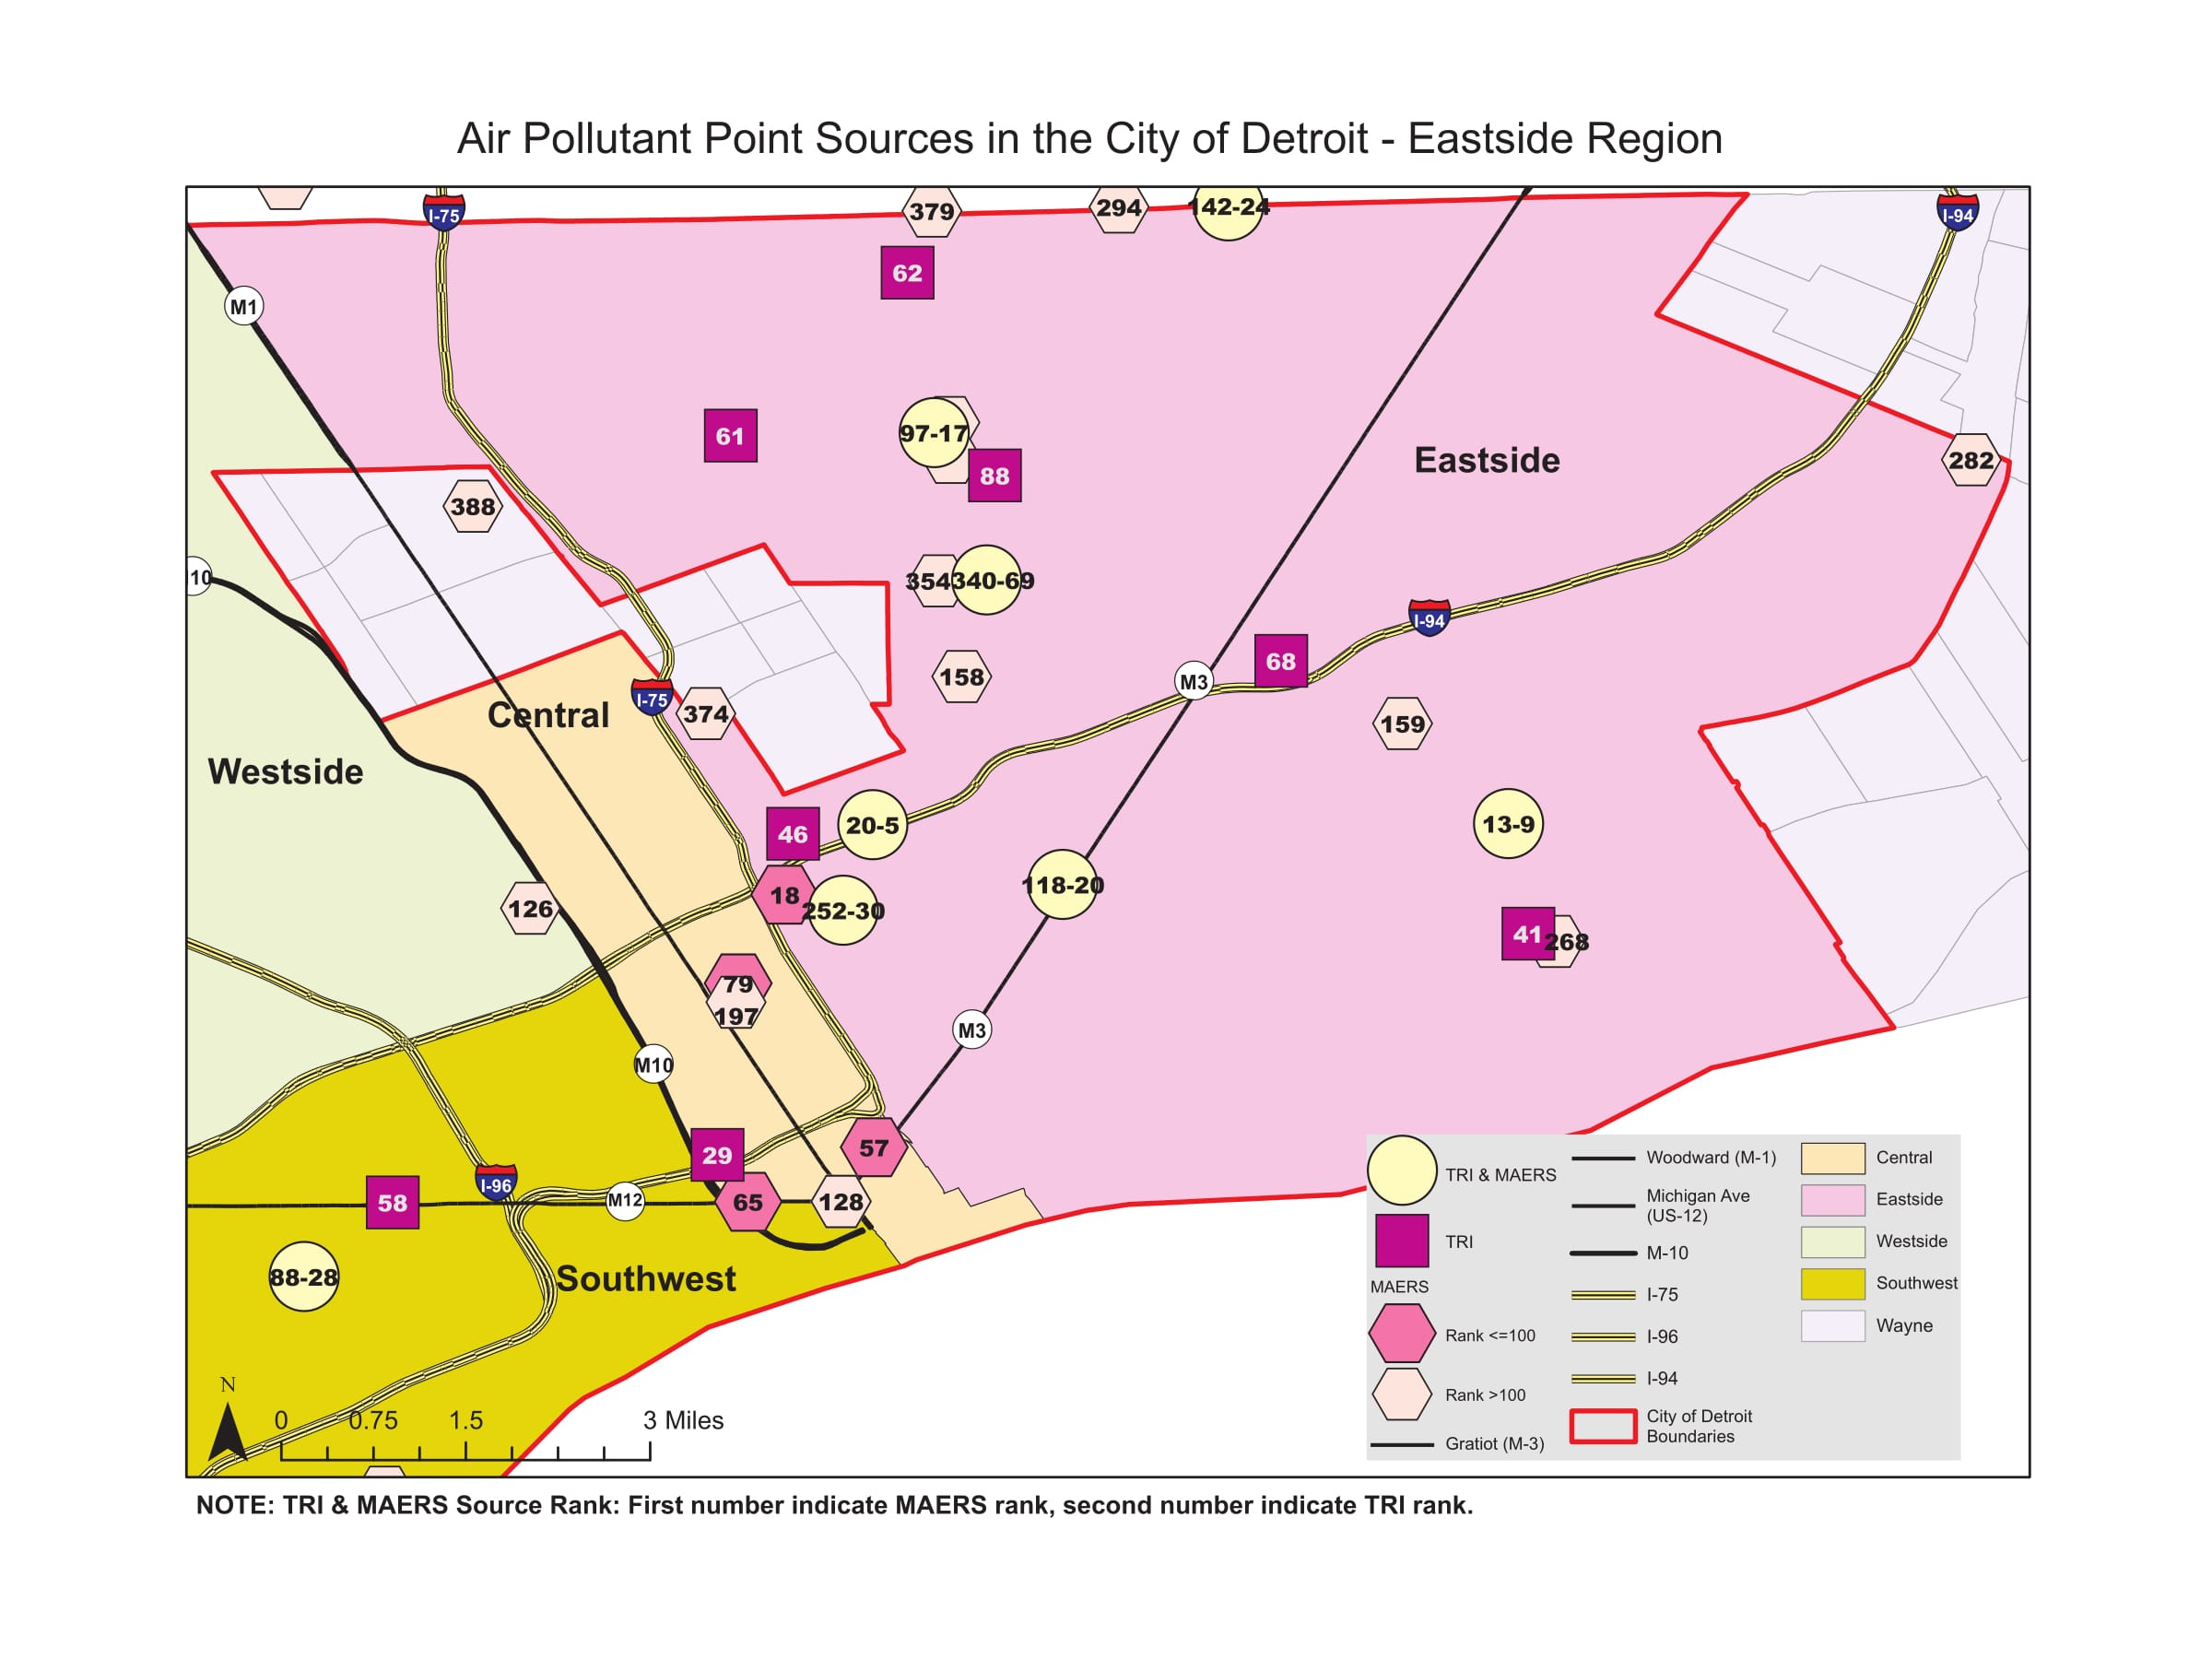 Area Specific Maps and Tables – Eastside Detroit | CA-PHE on memphis map, united states map, duluth map, chicago map, toronto map, henry ford hospital map, royal oak map, great lakes map, cincinnati map, compton map, michigan map, las vegas map, pittsburgh map, atlanta map, quebec map, baltimore map, highland park map, usa map, st louis on map, new york map,